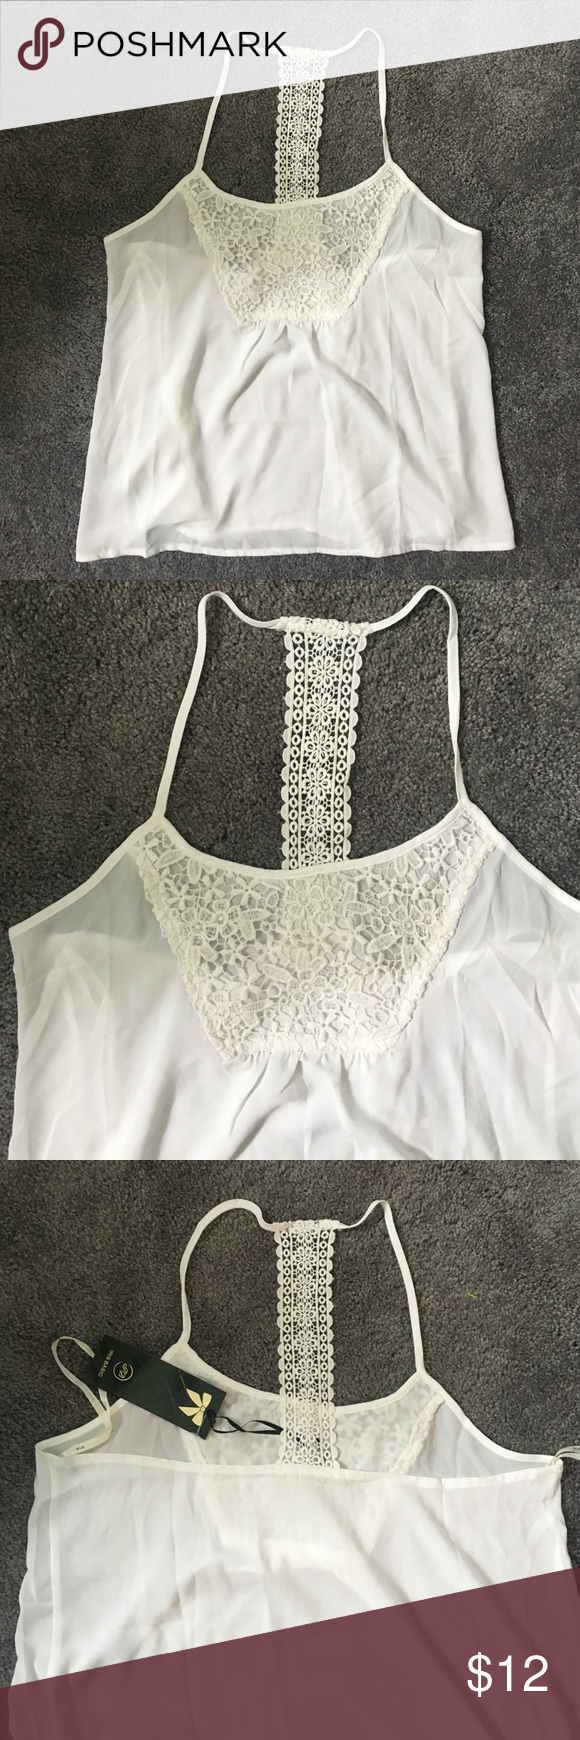 White crochet lace blouse ! White crochet lace blouse very pretty brand new size L but can also fit a M Tops Blouses